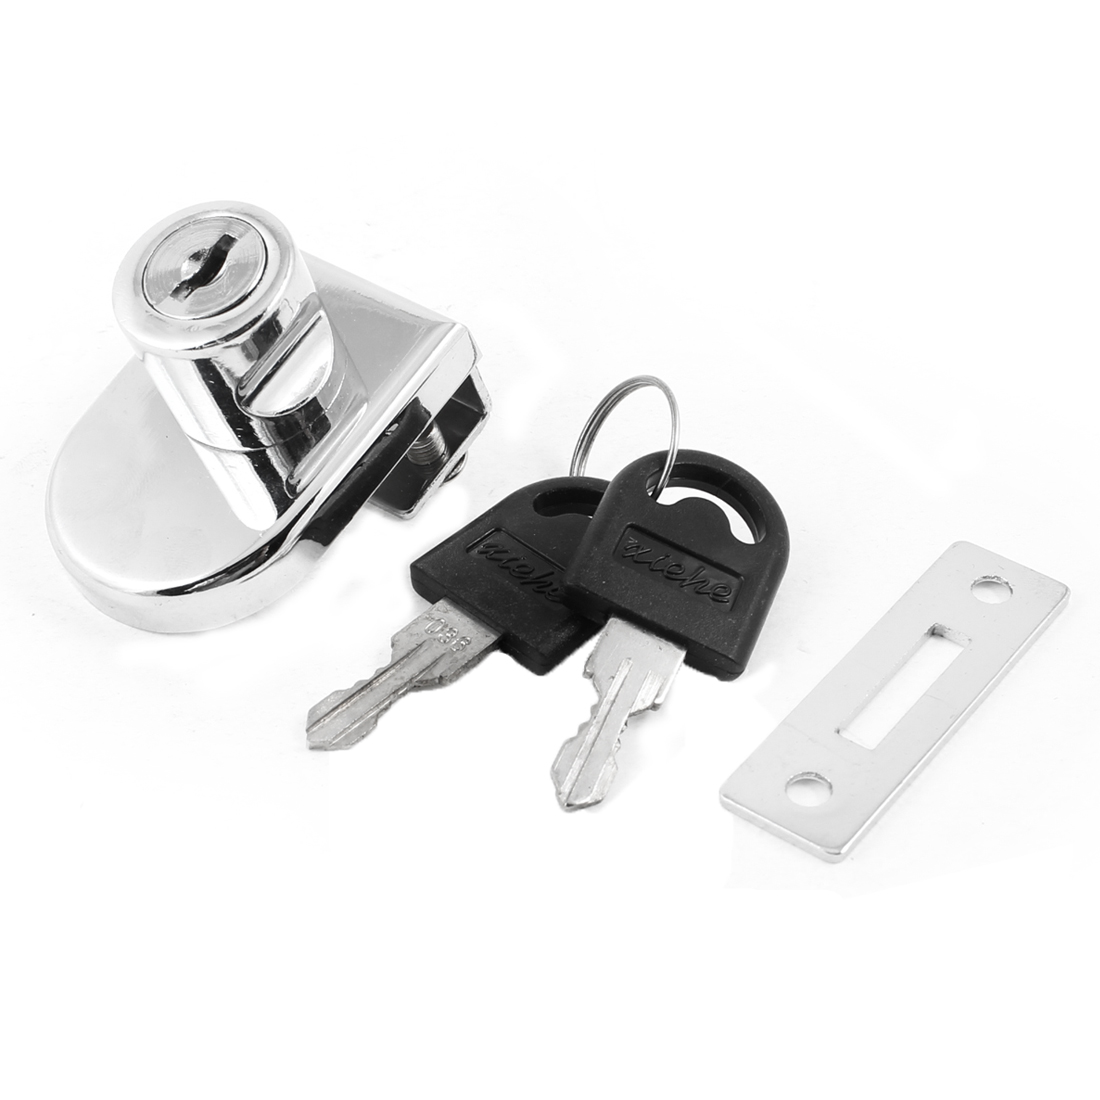 Household Showcase Display Cabinet Glass Door Lock Replacement w Keys